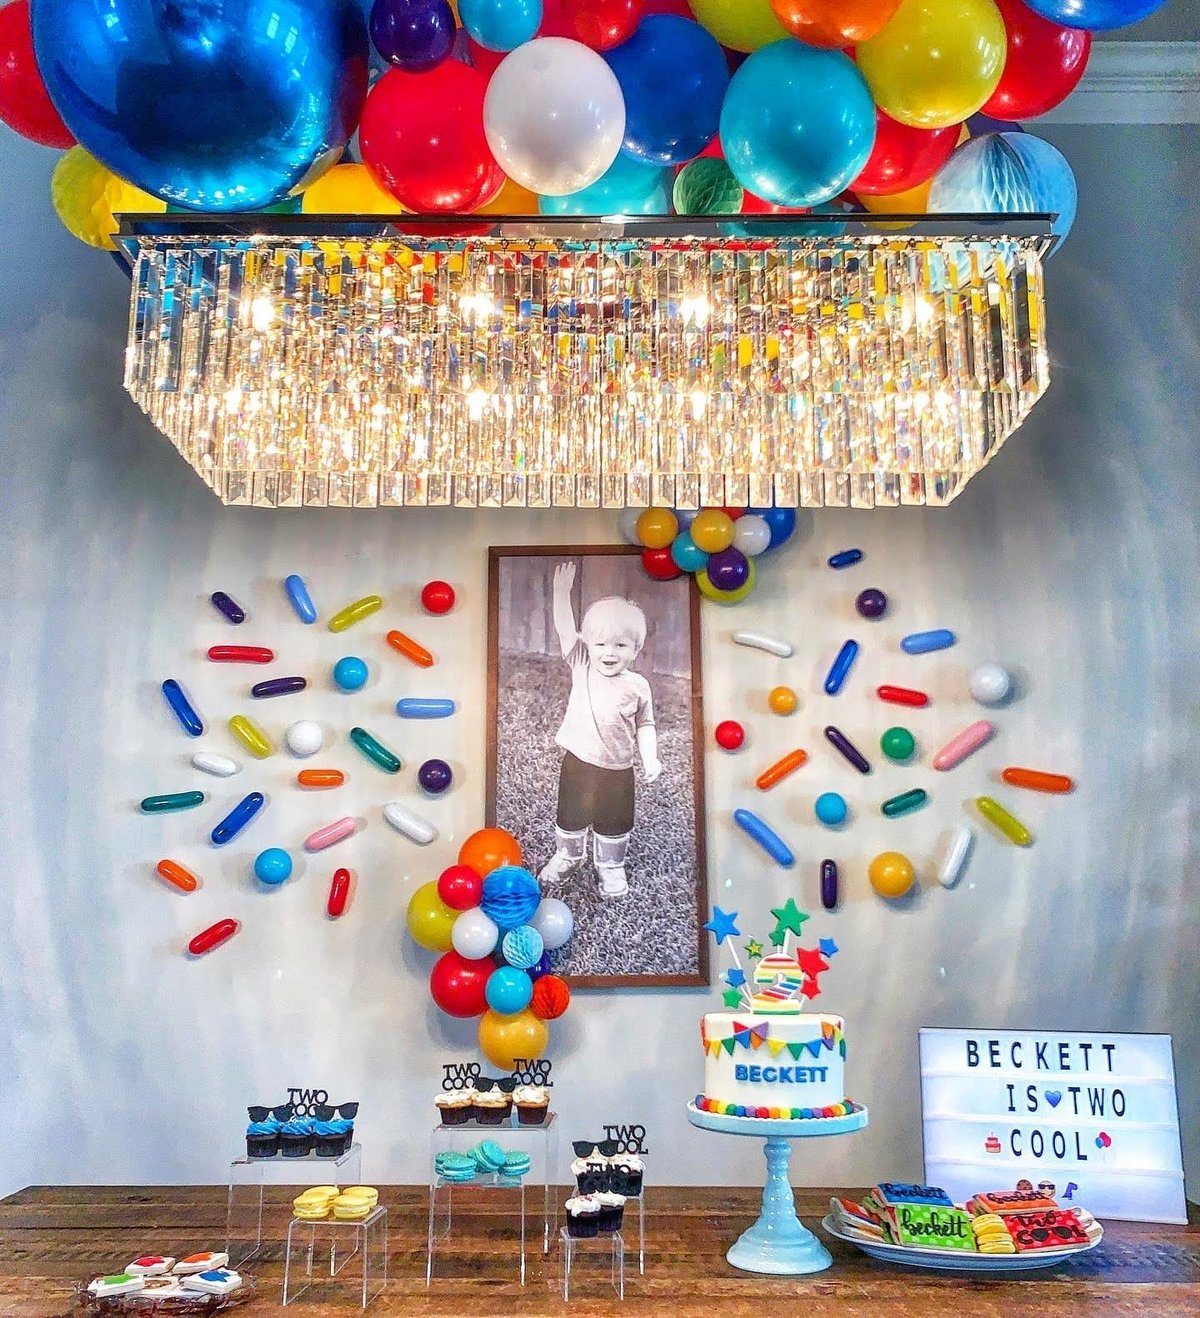 Sprinkle balloons for kids party